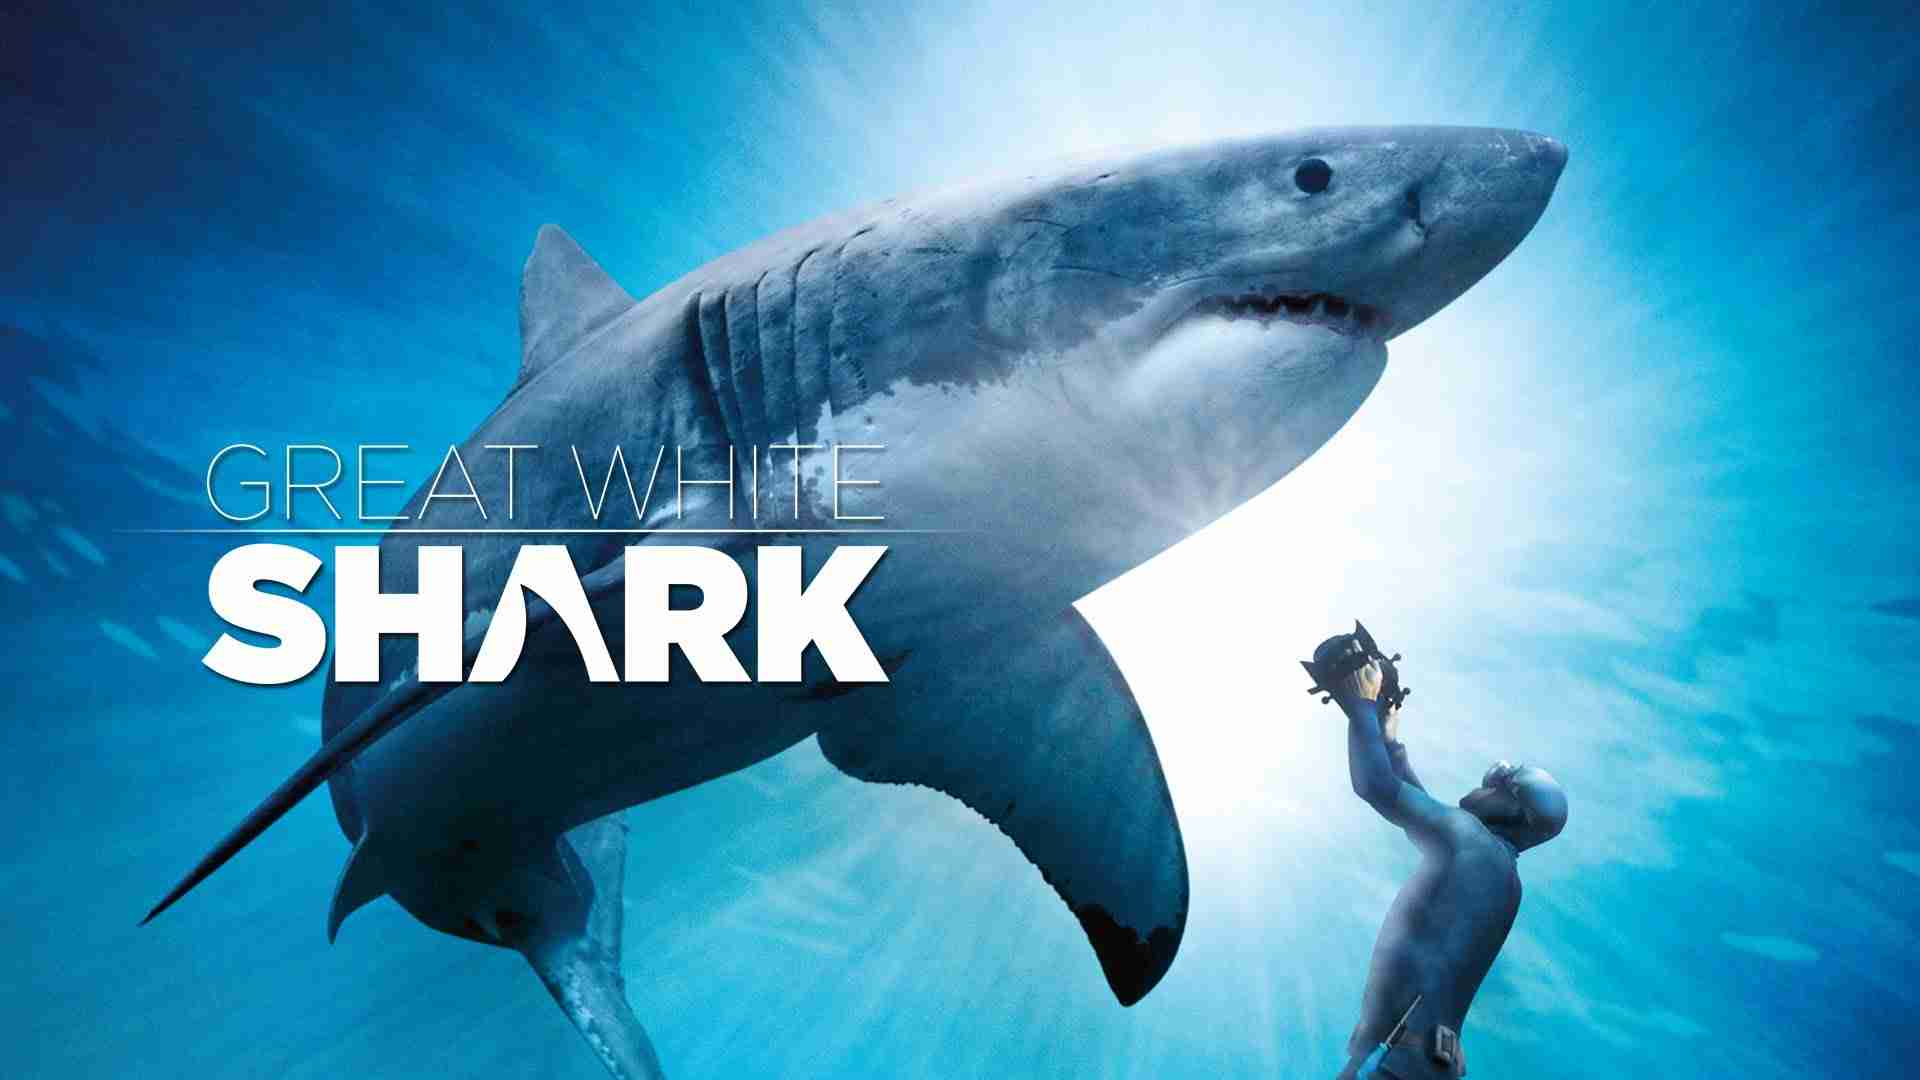 Great White Shark Official Trailer IMAX and Digital 3D - YouTube